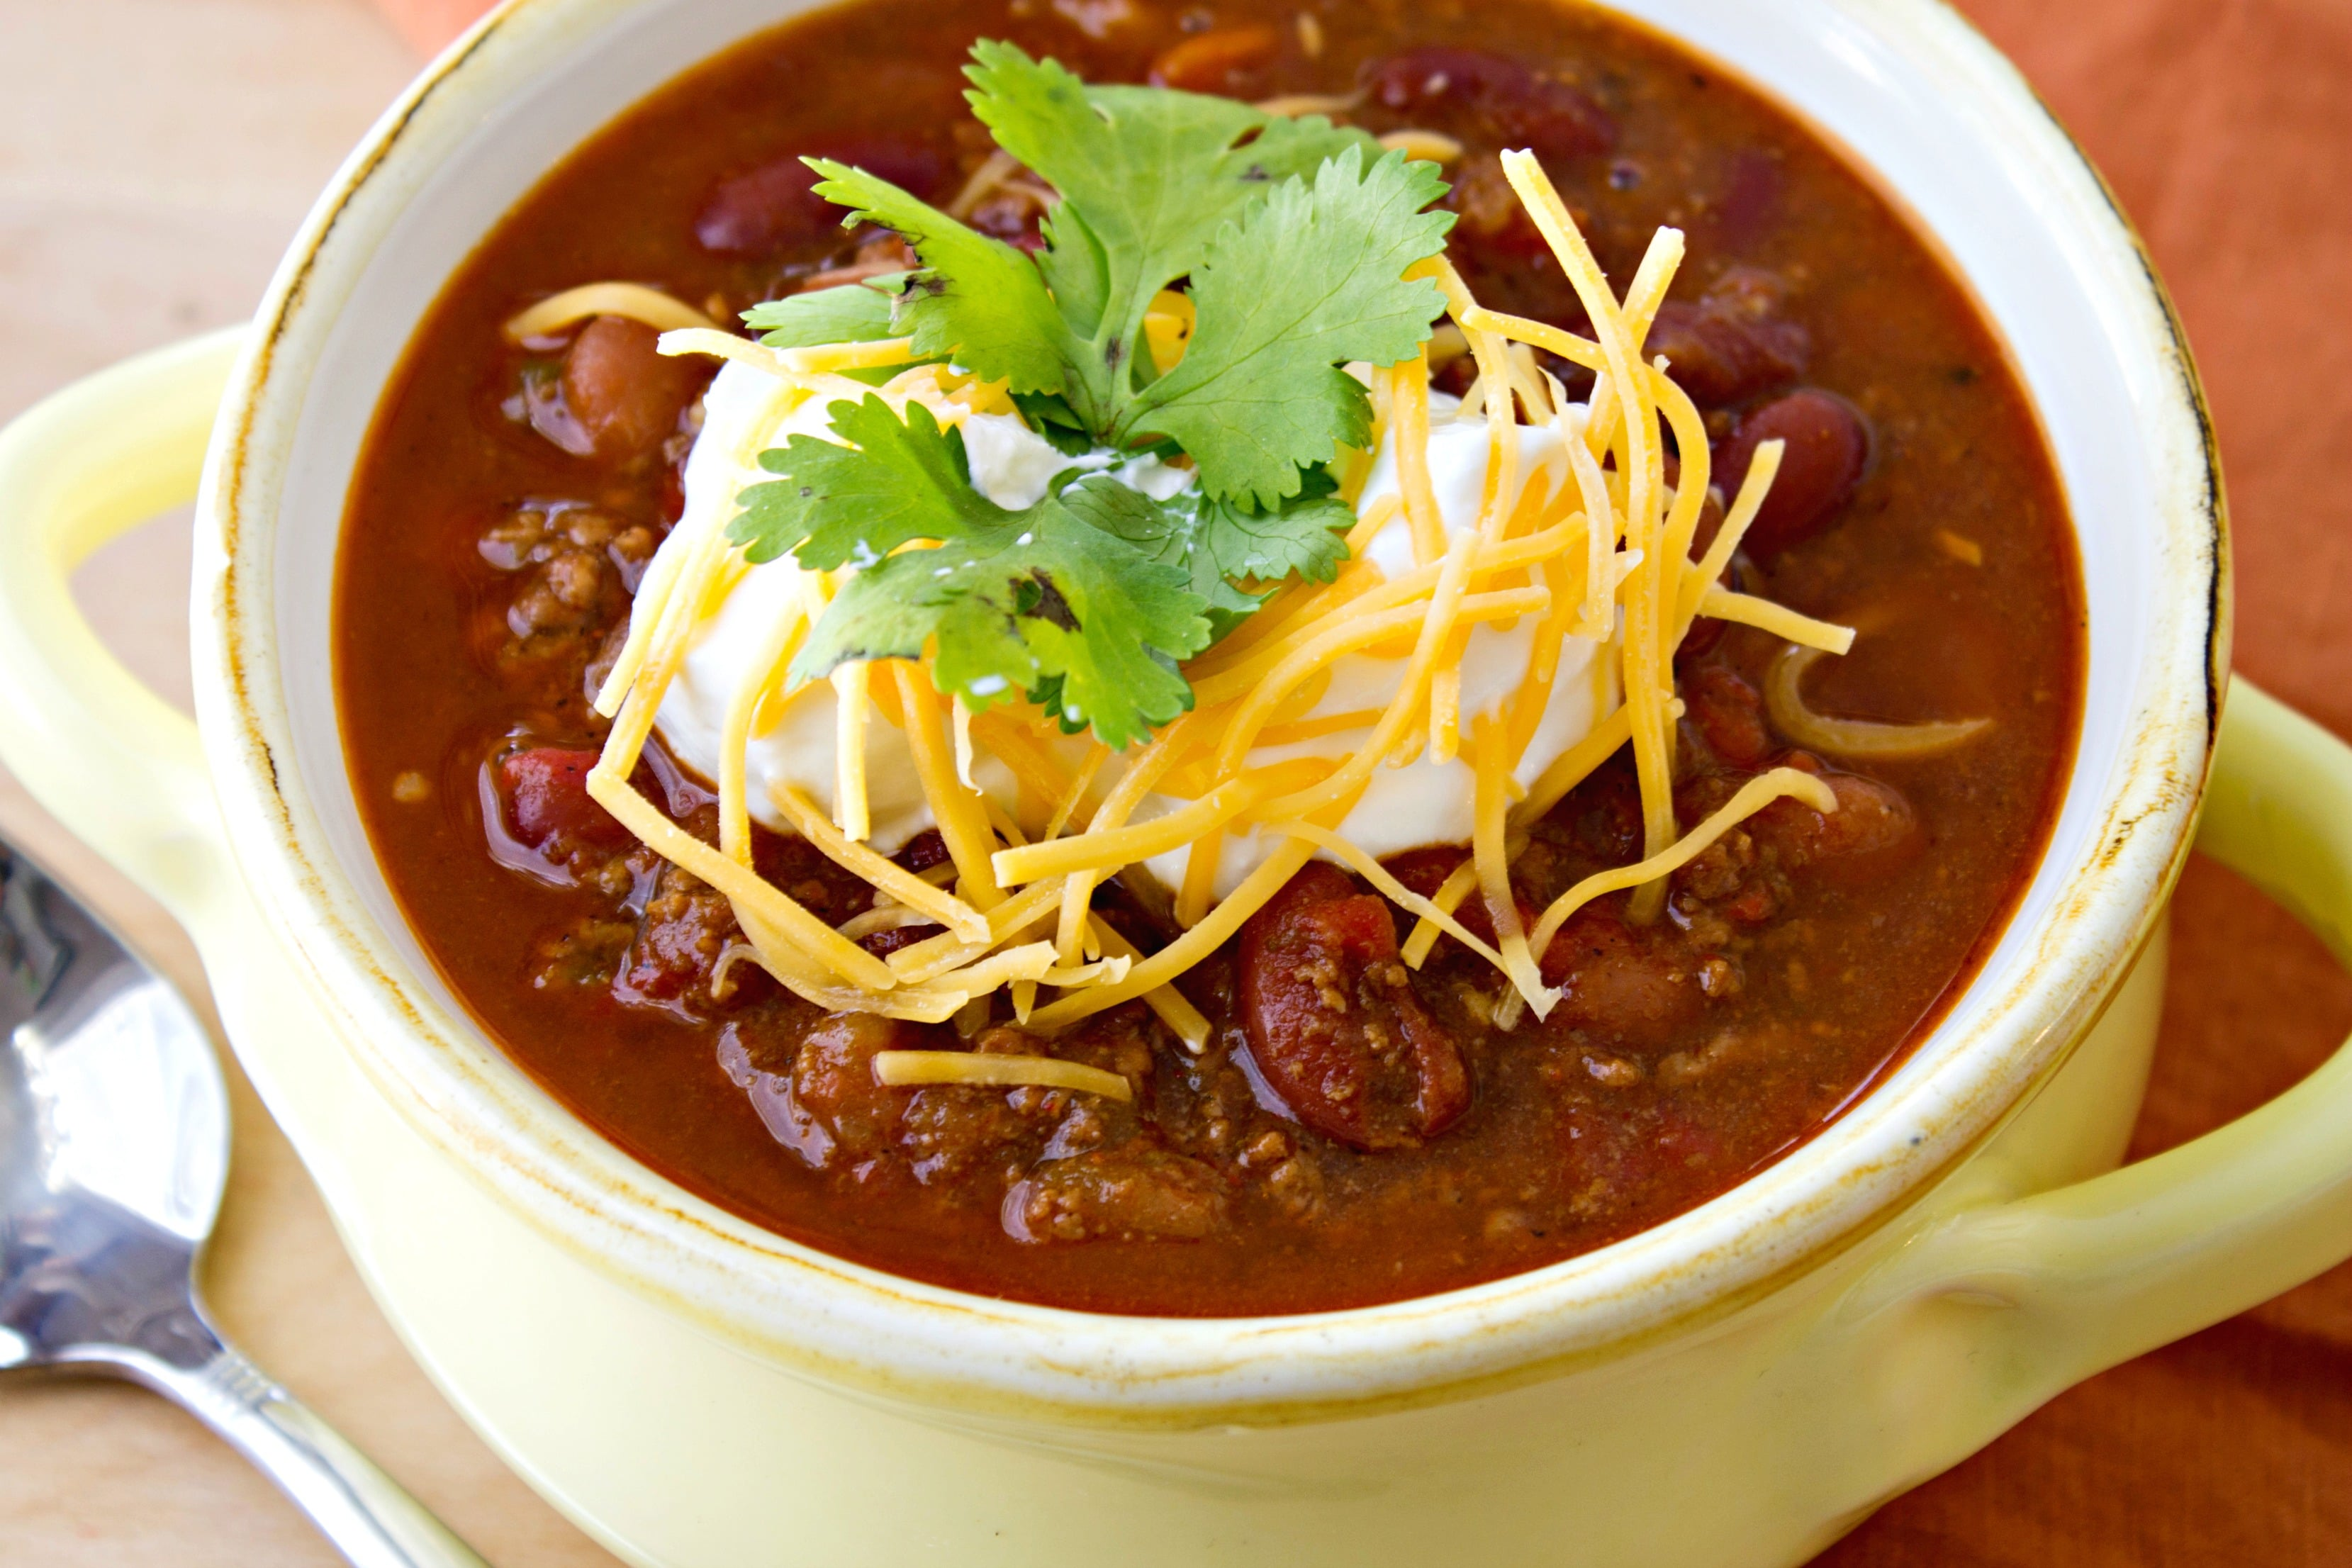 Cup Of Chili With Cheese, Sour Cream And Cilantro On Top